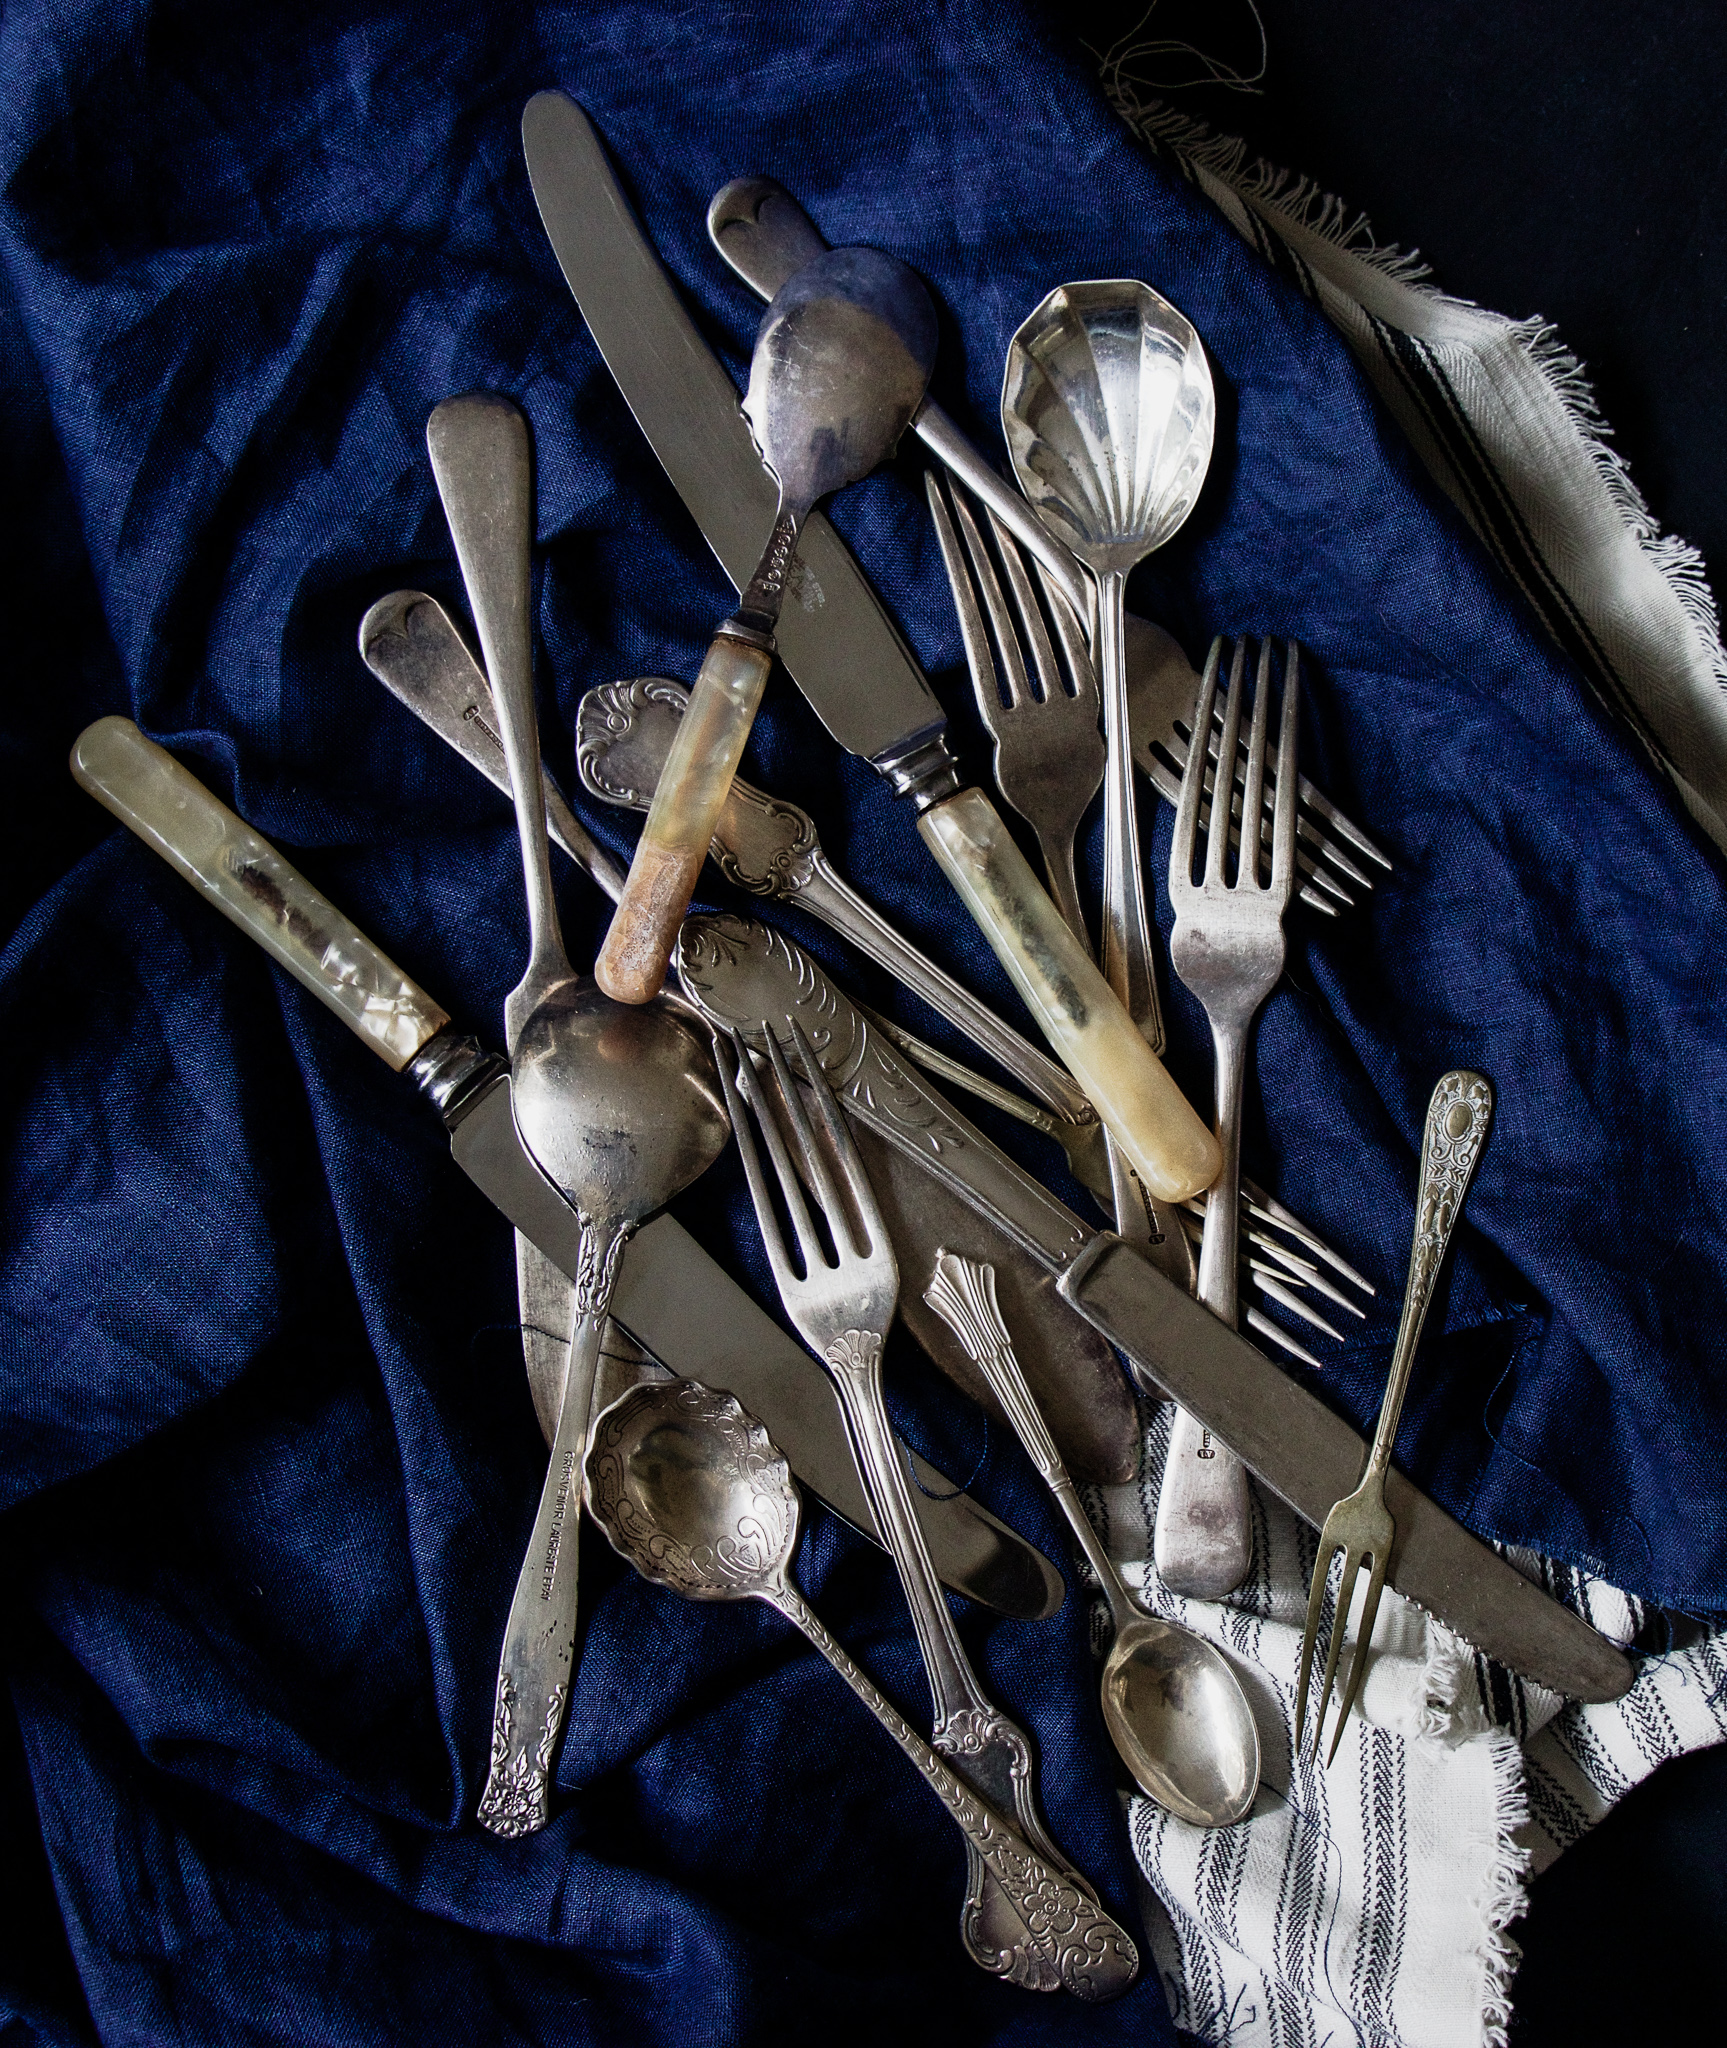 Pieces from my Cutlery Collection - For this image of vintage and antique silverware, I picked pieces with engraved details, varying degrees of age and wear and also combined different shapes and sizes to add texture, tone and points of interest. Layering a dark base with deep blue linen and a contrasting white and blue striped fabric (known as ticking) adds another layer of texture, contrasts with the silverware, and makes the cutlery